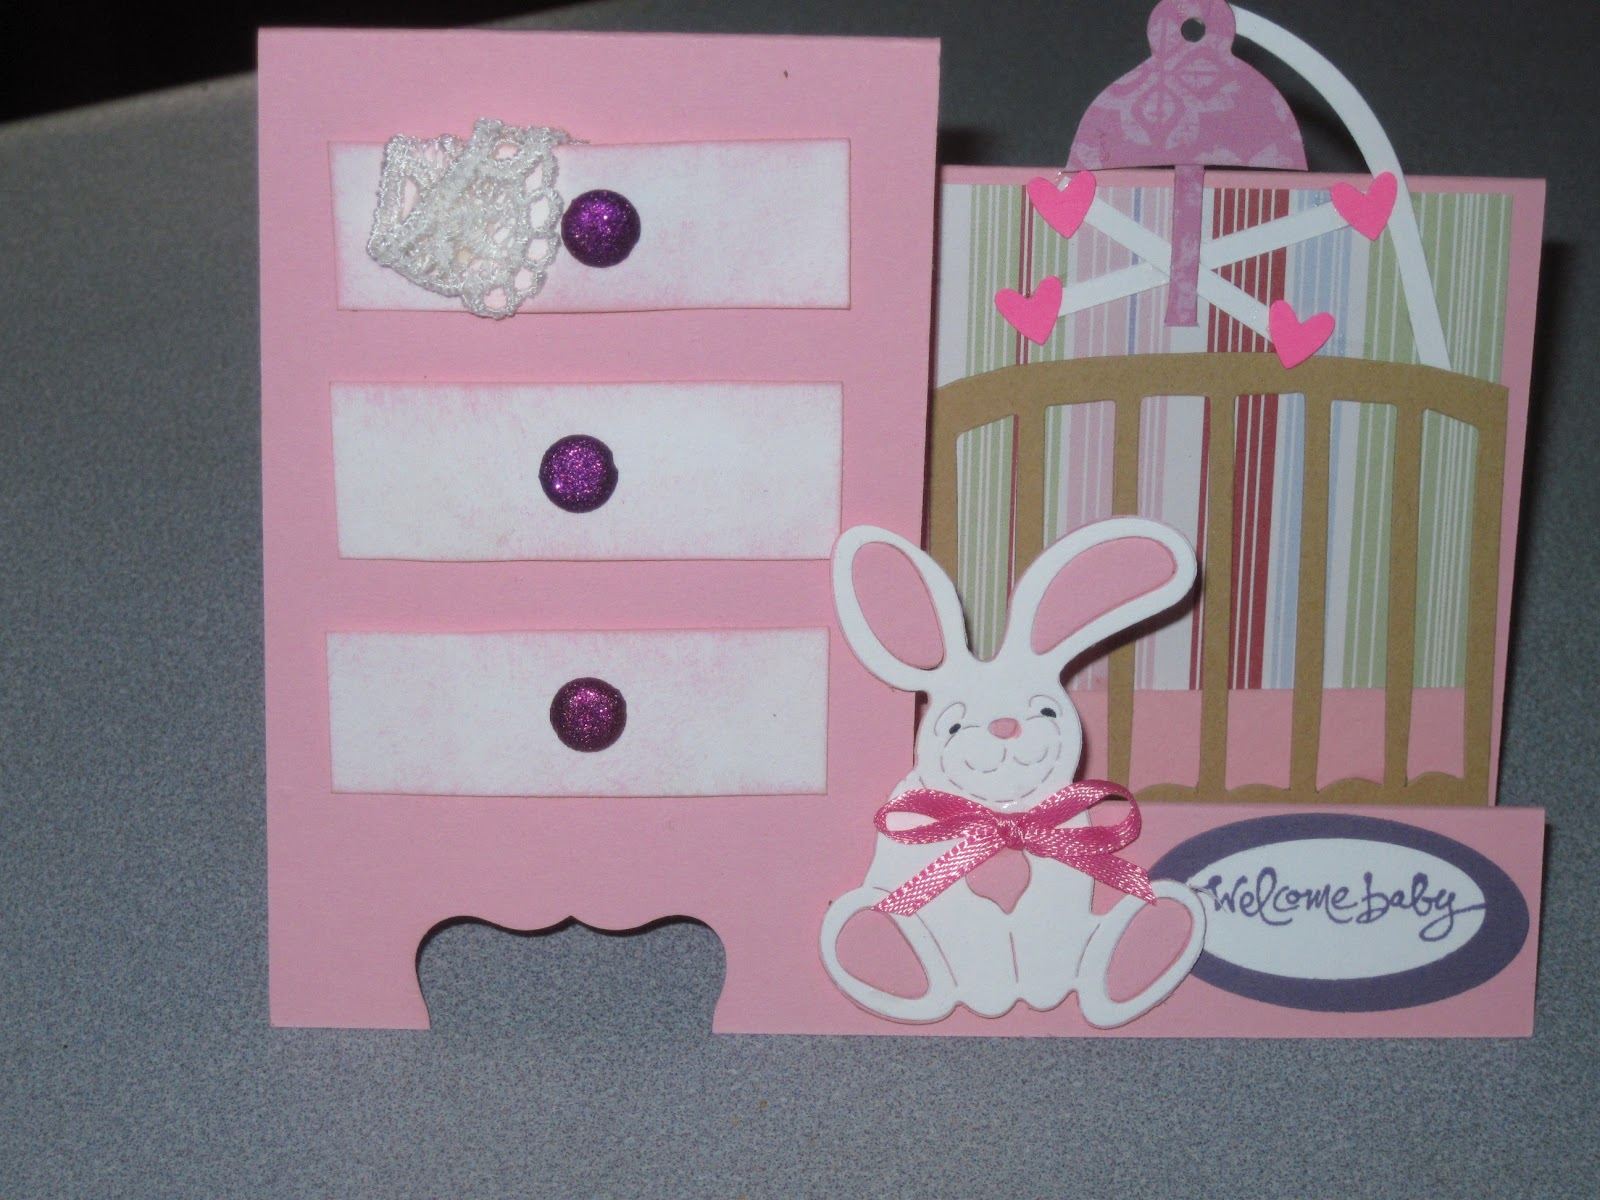 Homemade Baby Cards On Pinterest | Party Invitations Ideas